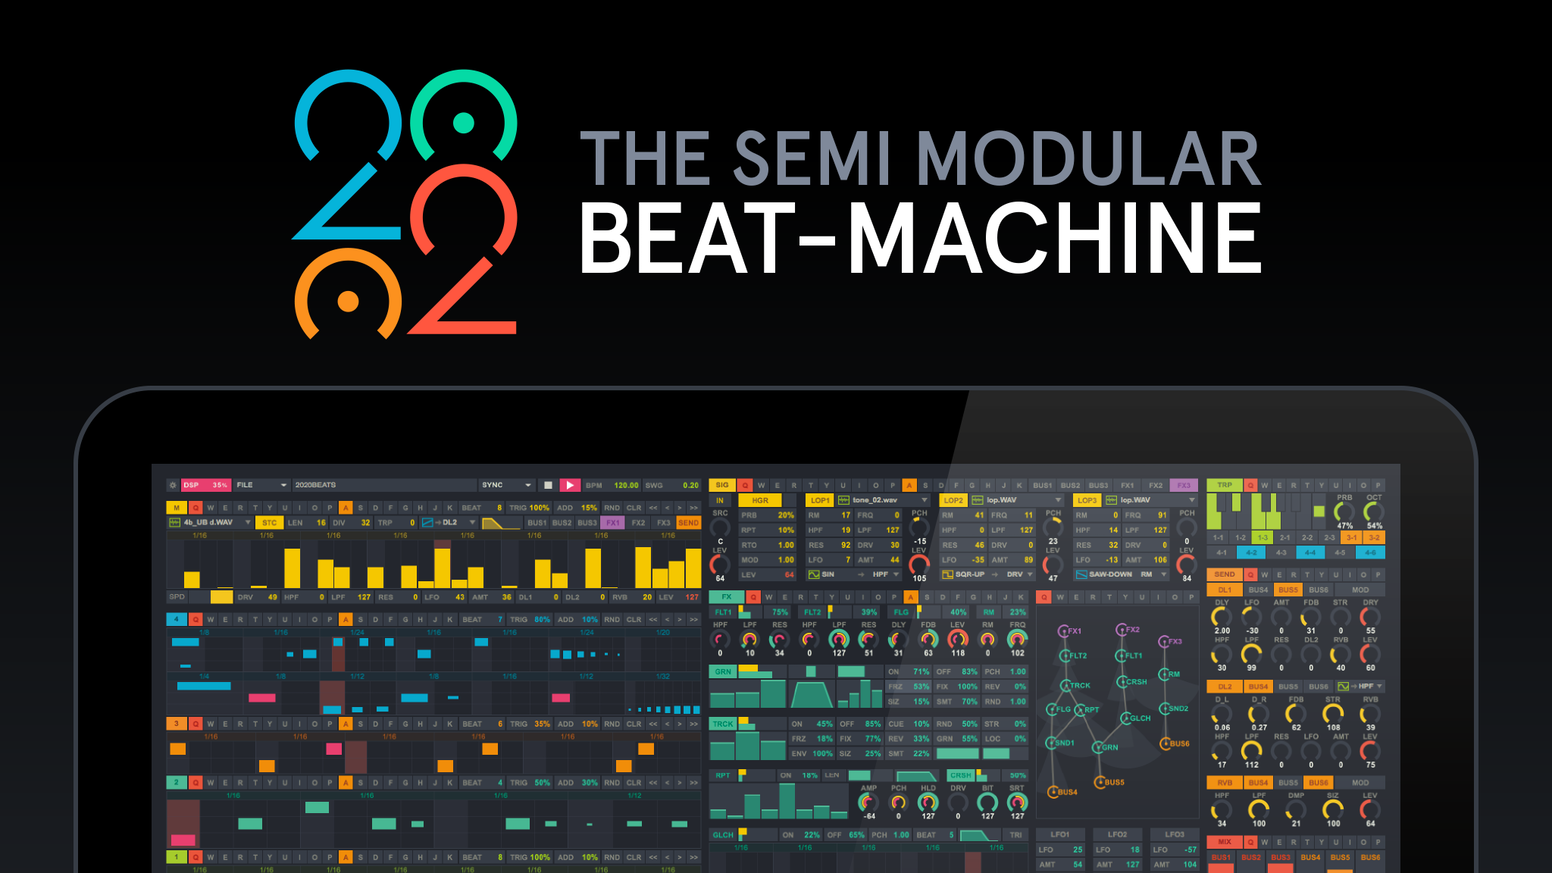 2020 is a next generation semi modular beat-machine standalone software for beat making and real-time compositions.